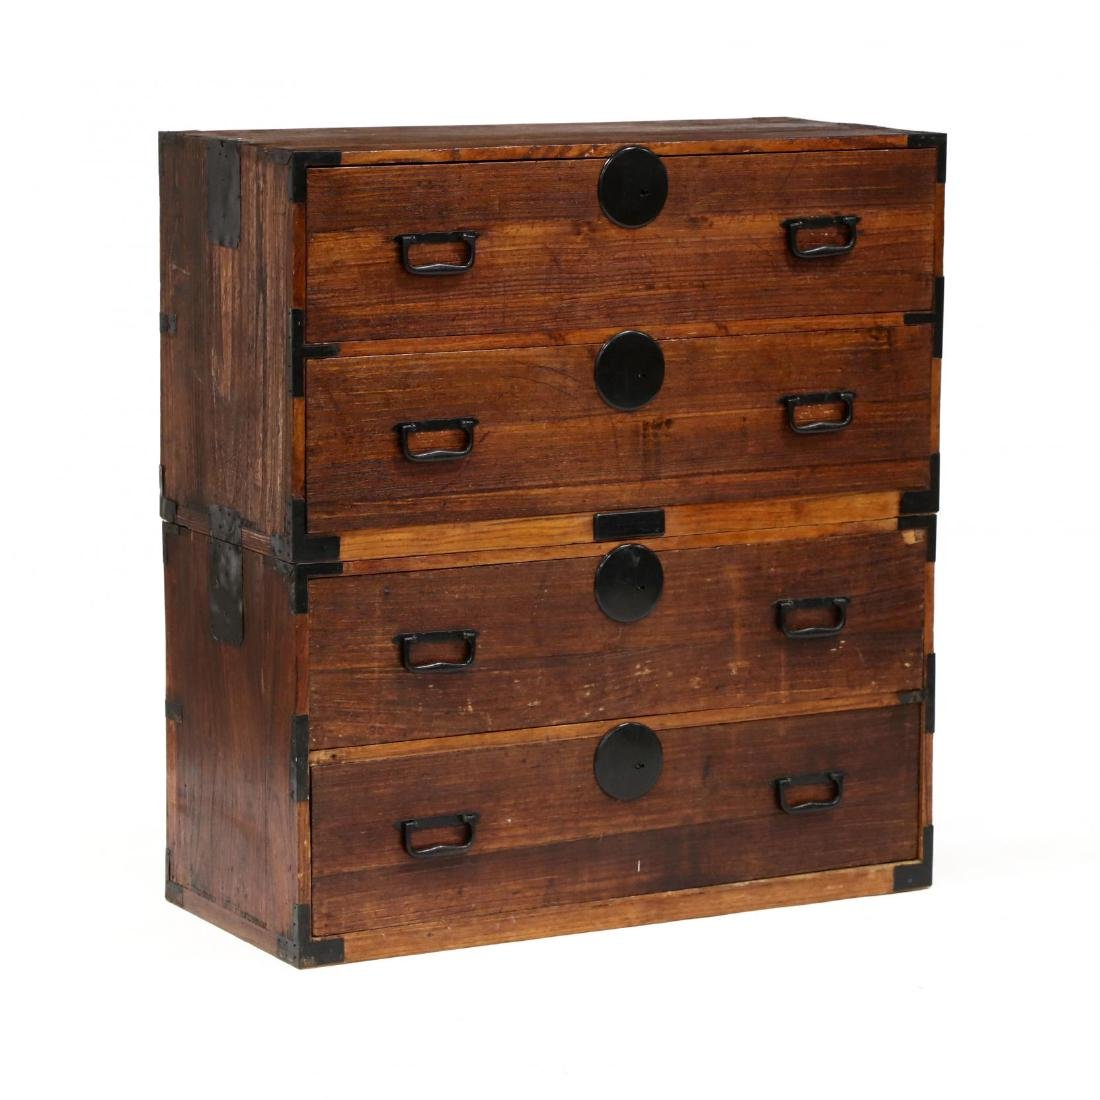 A Japanese Antique Tansu Chest on Chest